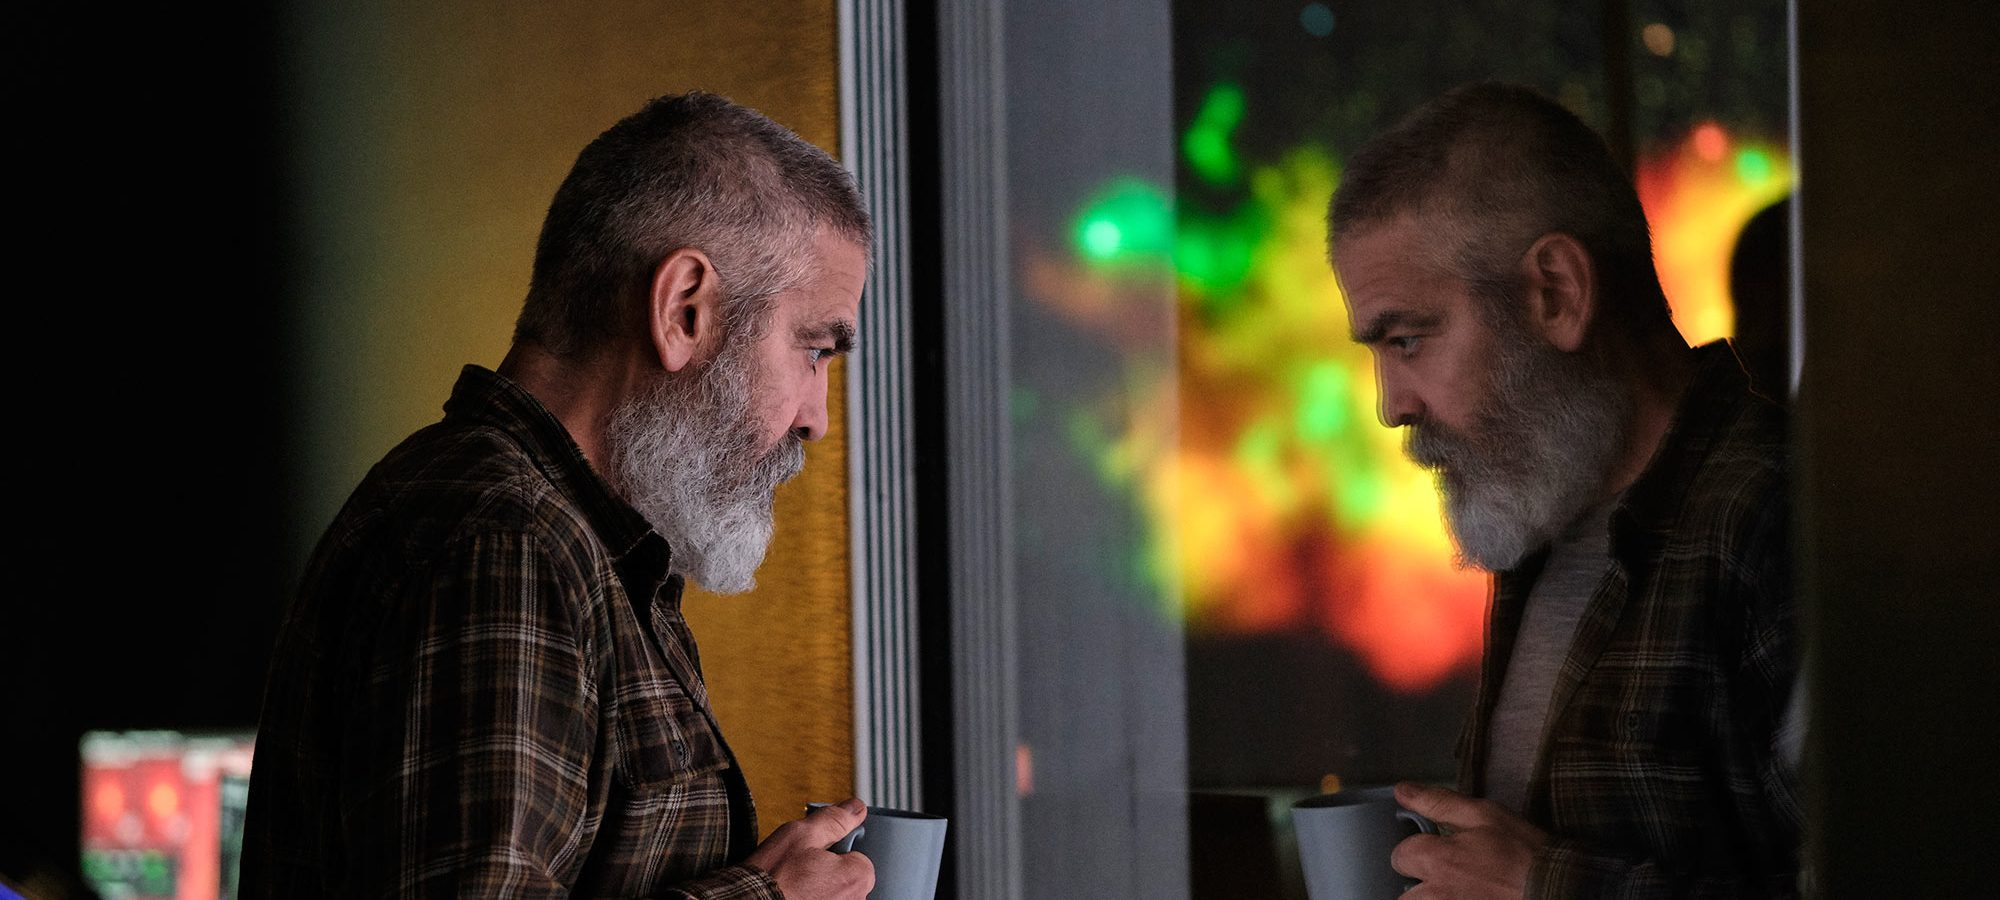 While The Midnight Sky has its strengths, it's hardly the Clooney comeback people have been waiting for.